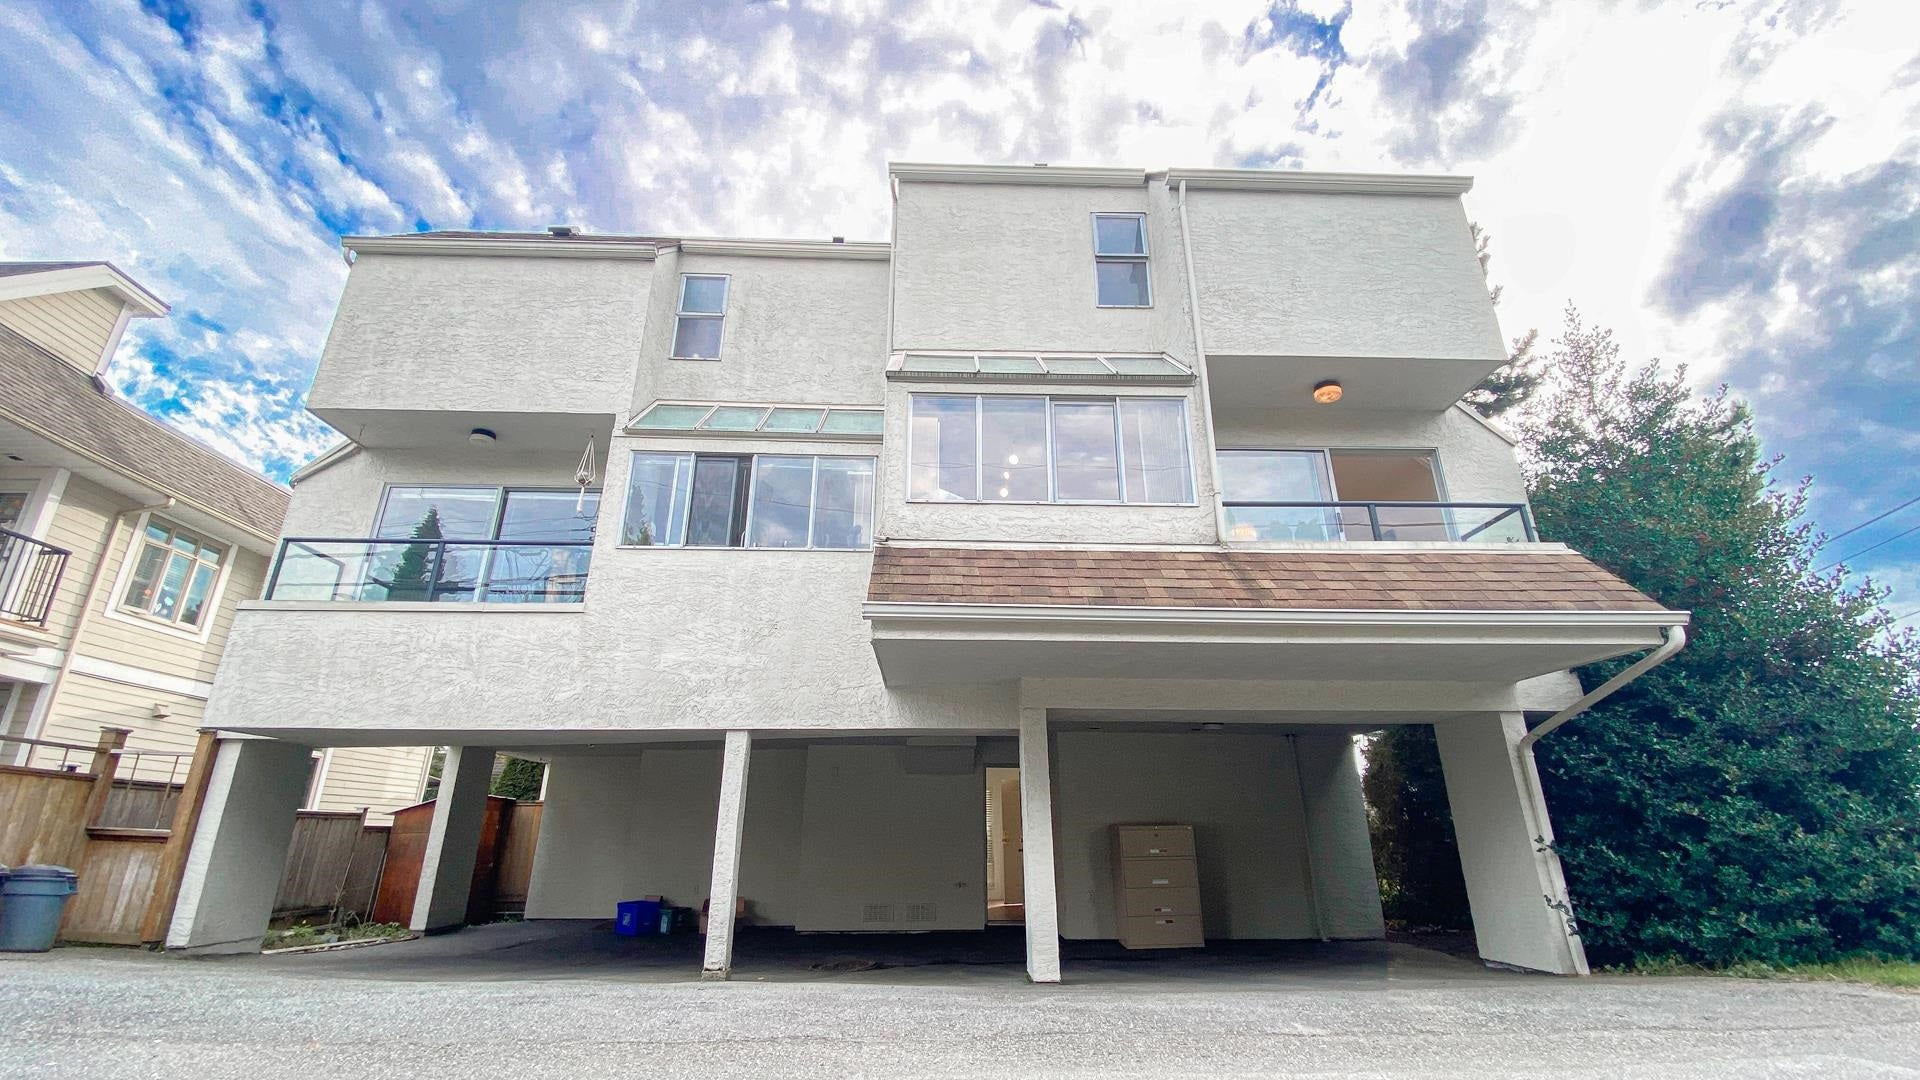 1 410 MAHON AVENUE - Lower Lonsdale Townhouse for sale, 2 Bedrooms (R2623610) - #3